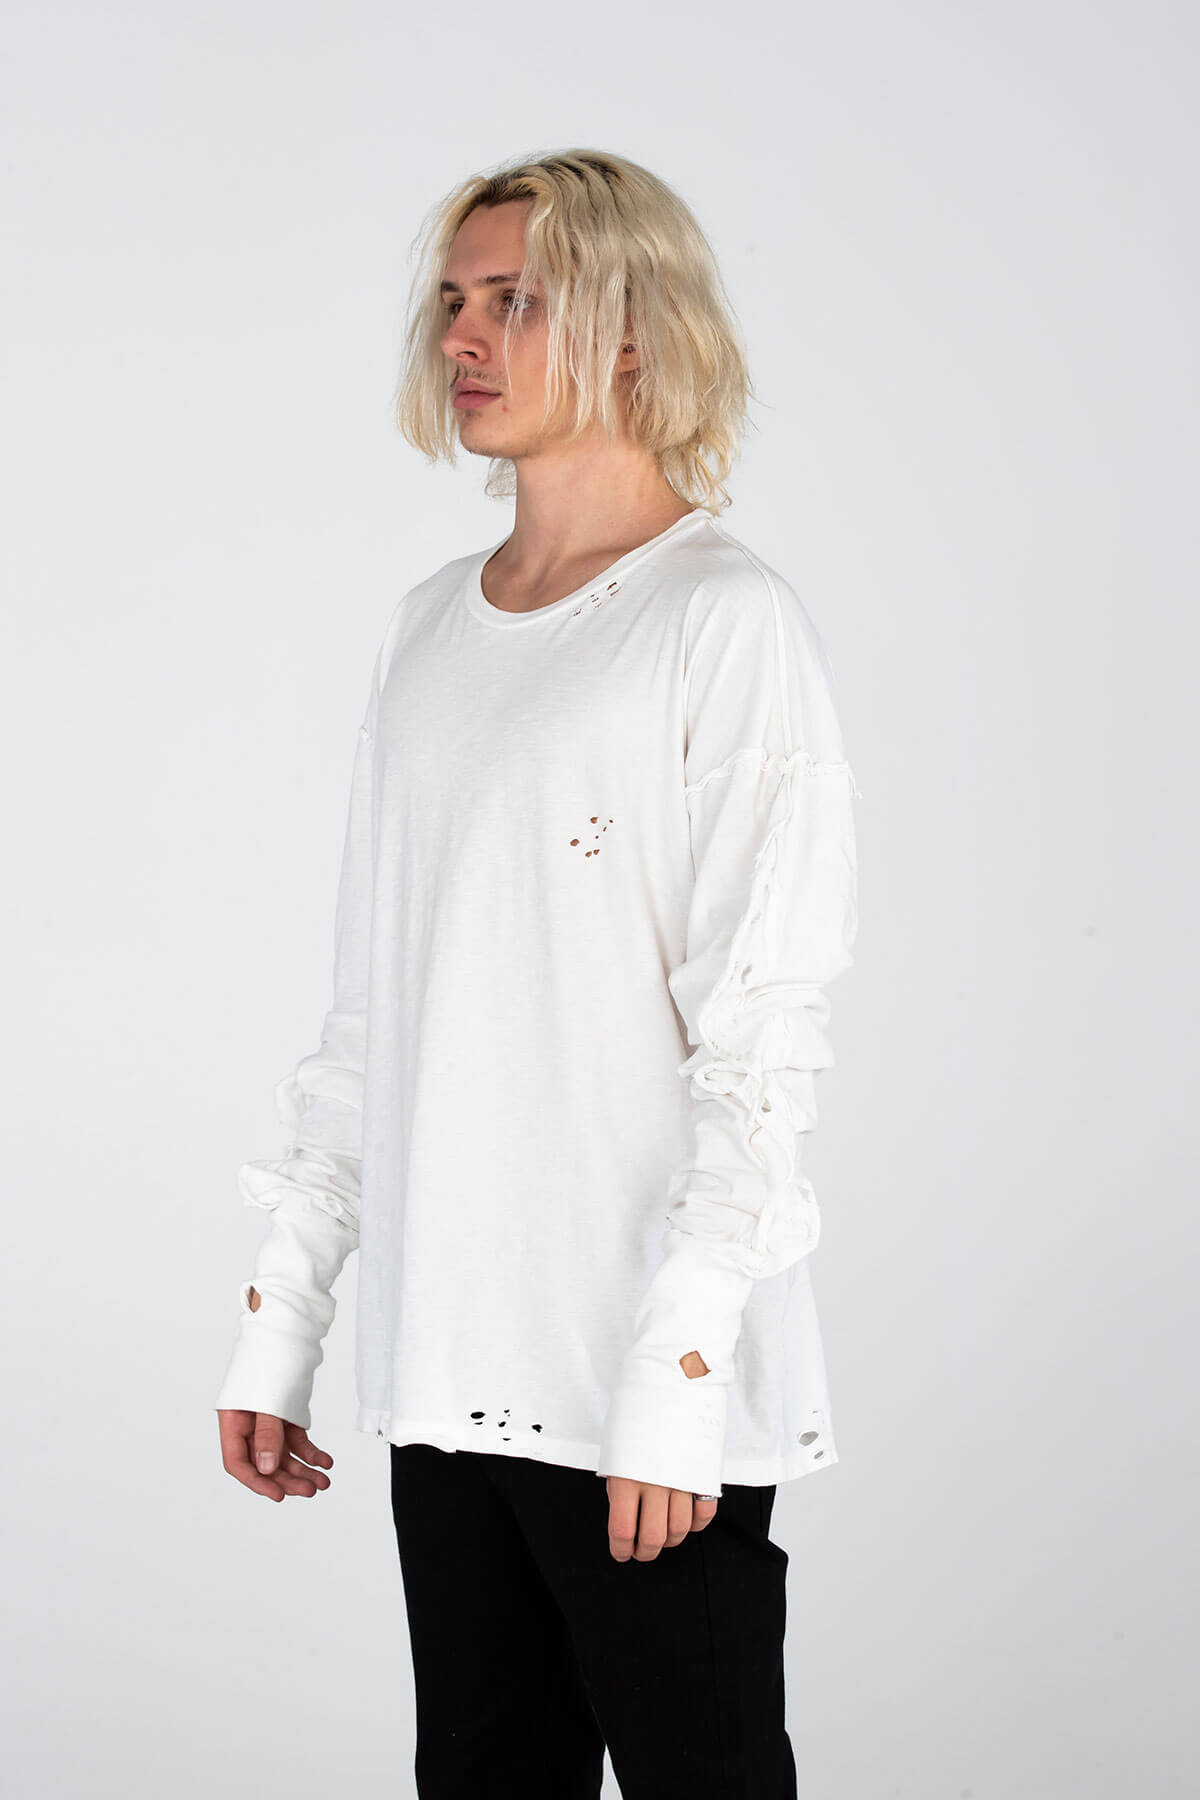 VINTAGE LONG SLEEVE T SHIRT – HAND DISTRESSED - ARCHIVE TOP - MJB